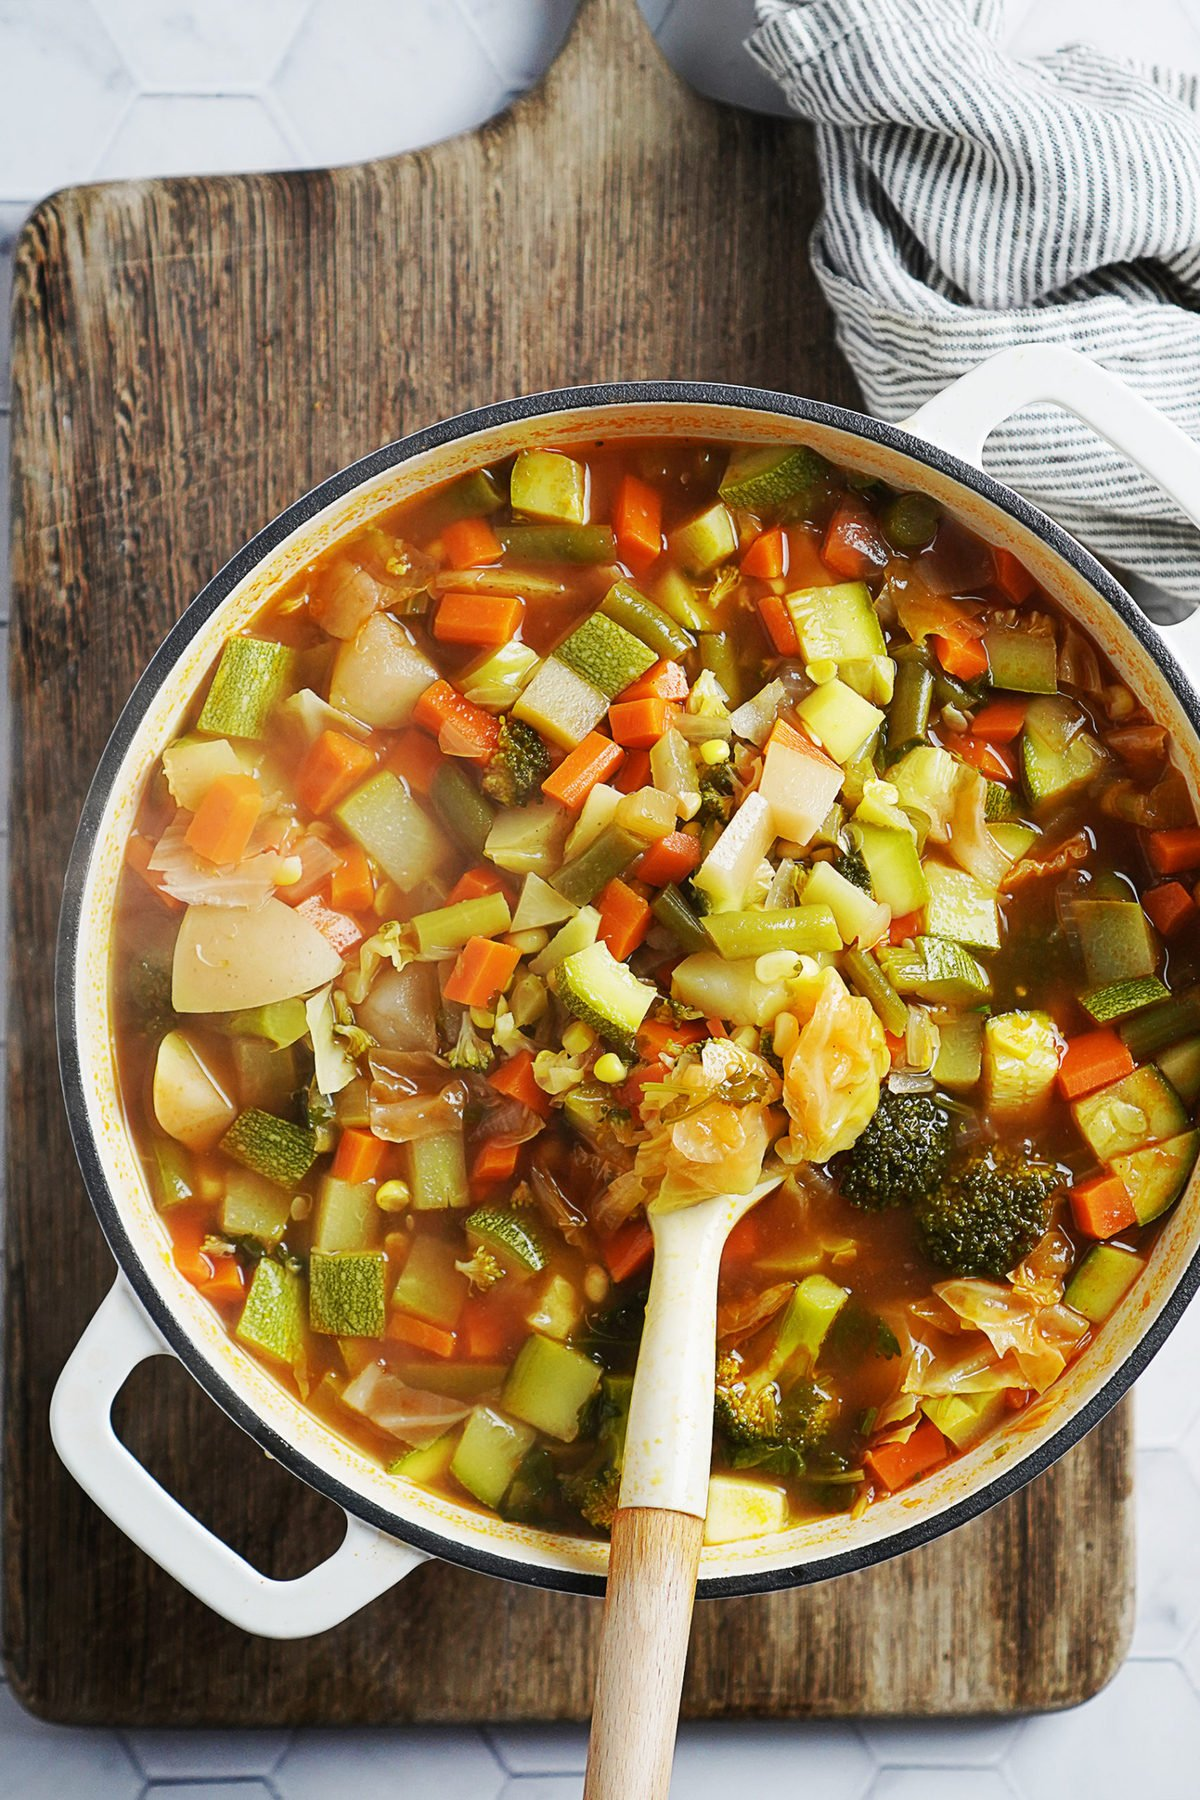 Stirring the vegetable soup with a white cooking spoon